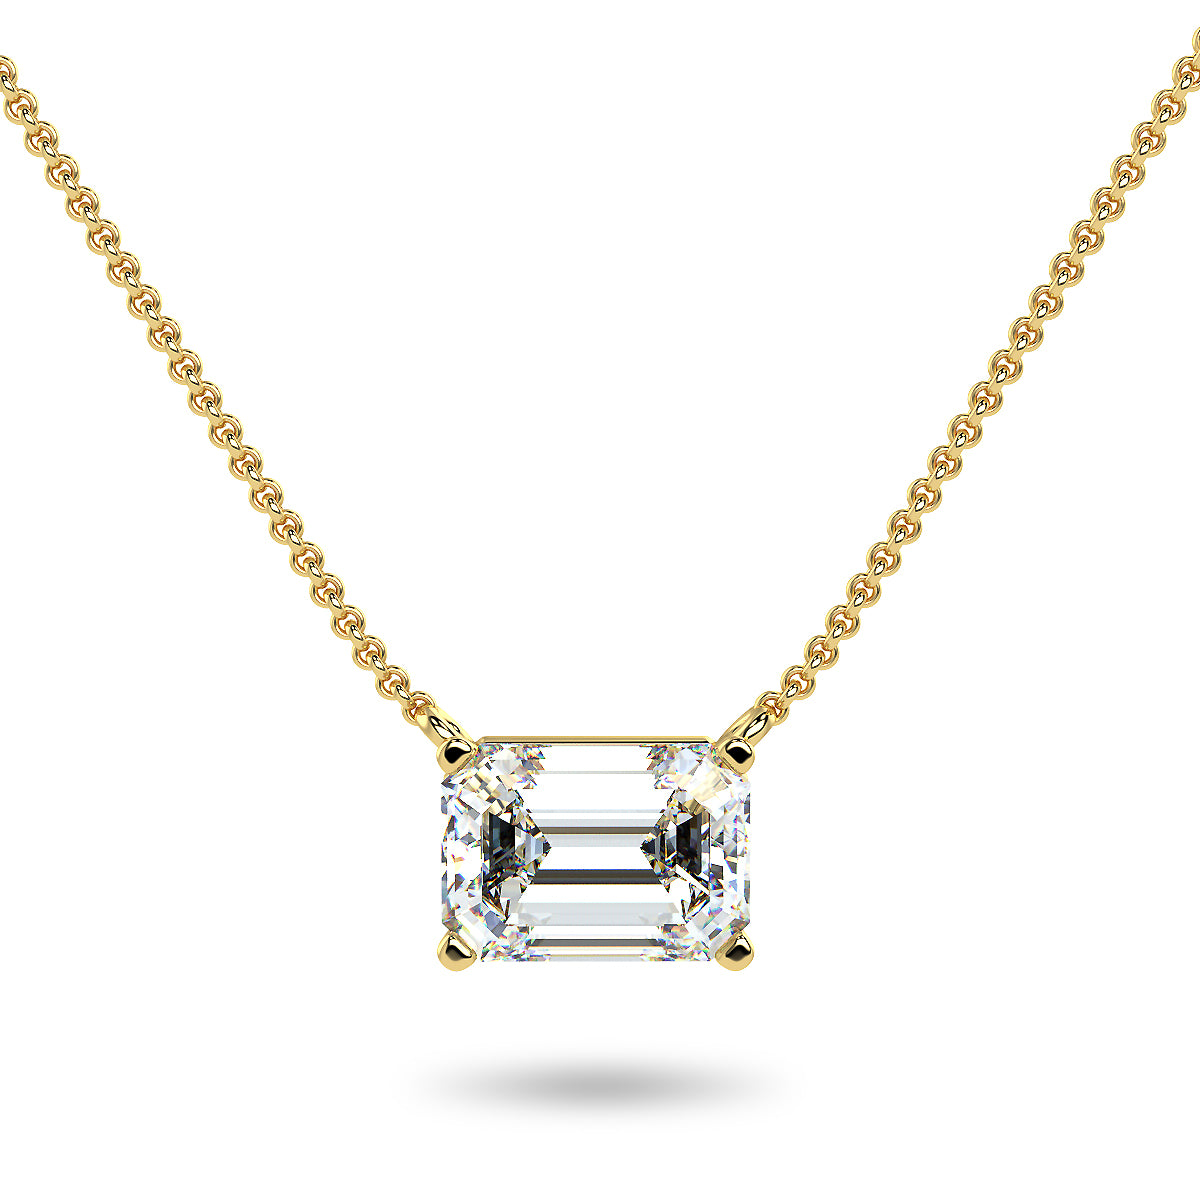 Sirius Emerald Necklace - Yellow Gold (0.33 - 2.00 Ct. Tw.)